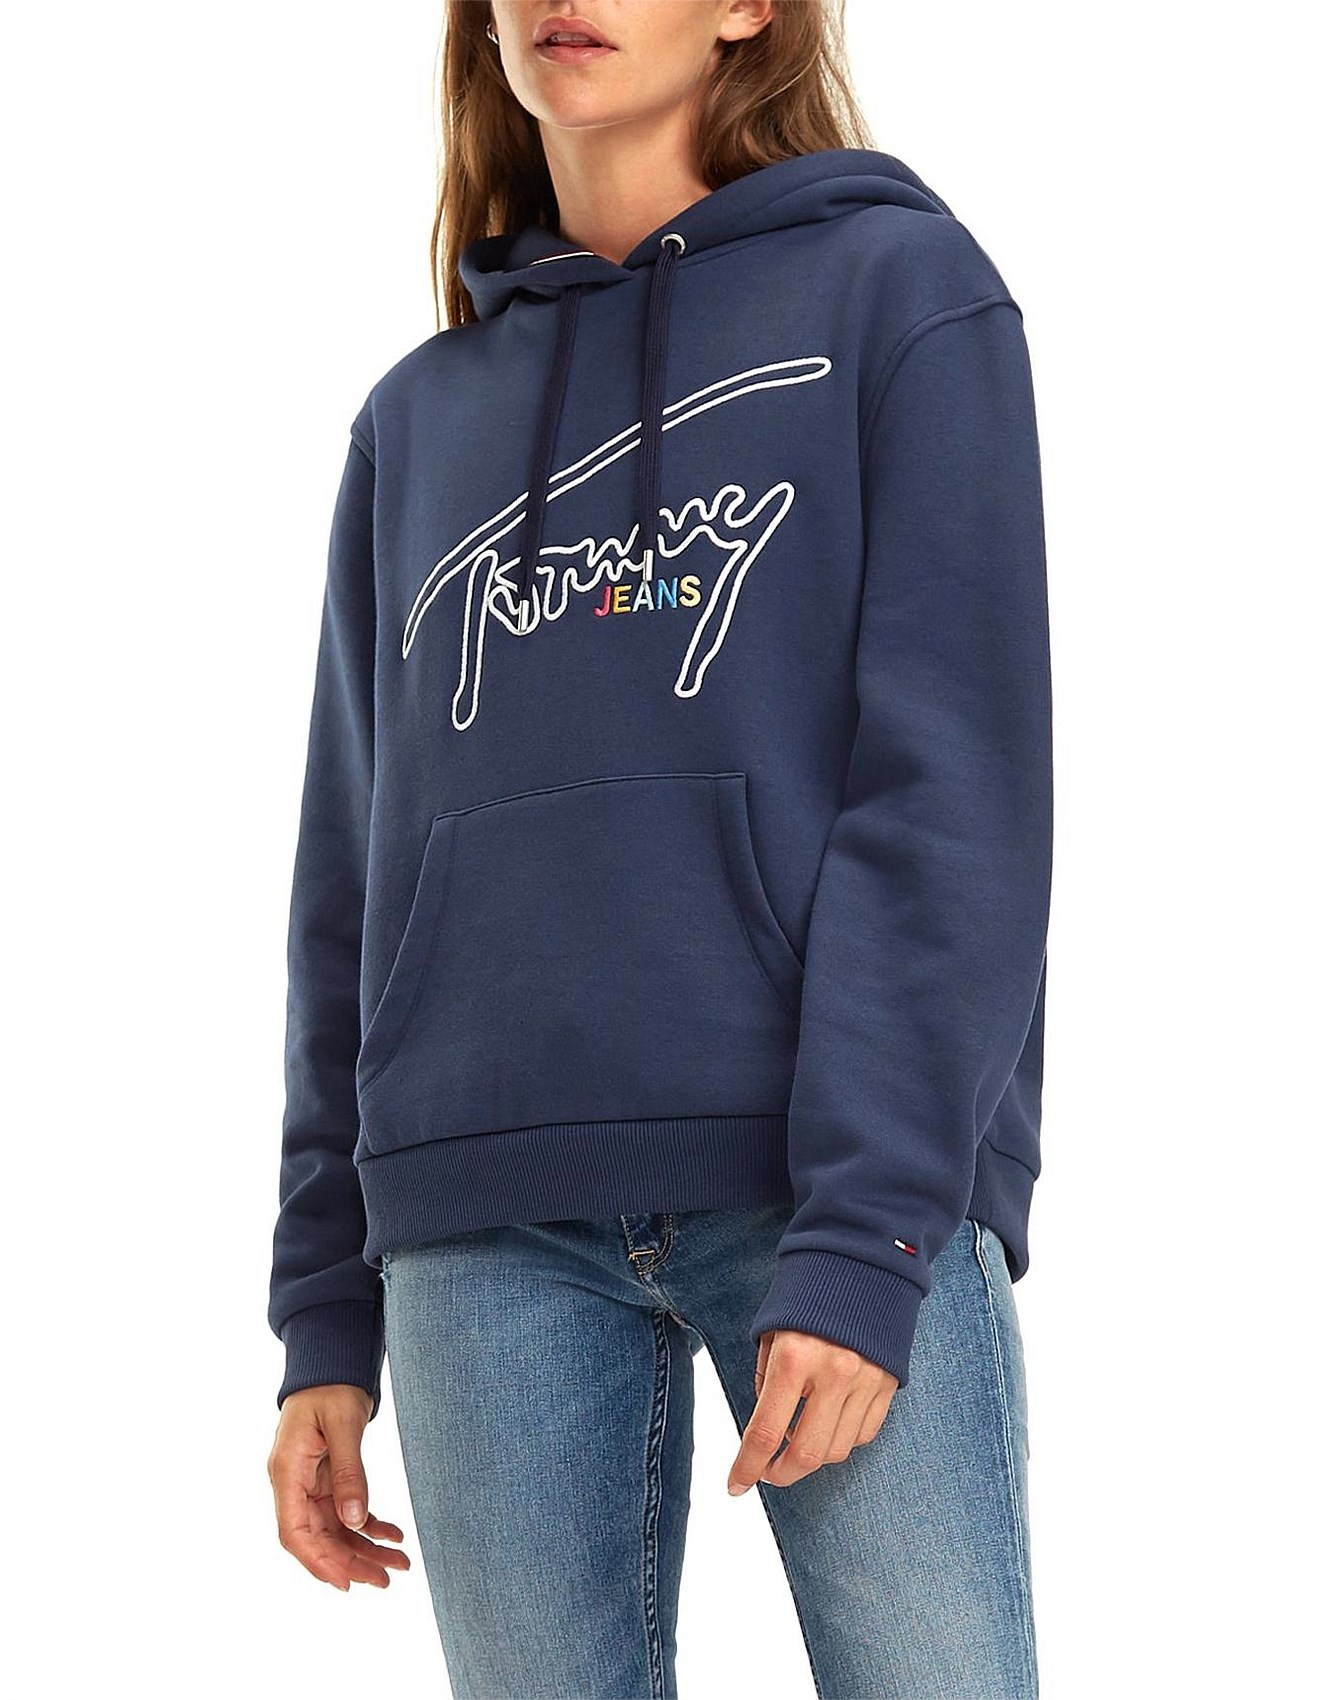 16d0f3330 Clothing - Tommy Signature Hoodie